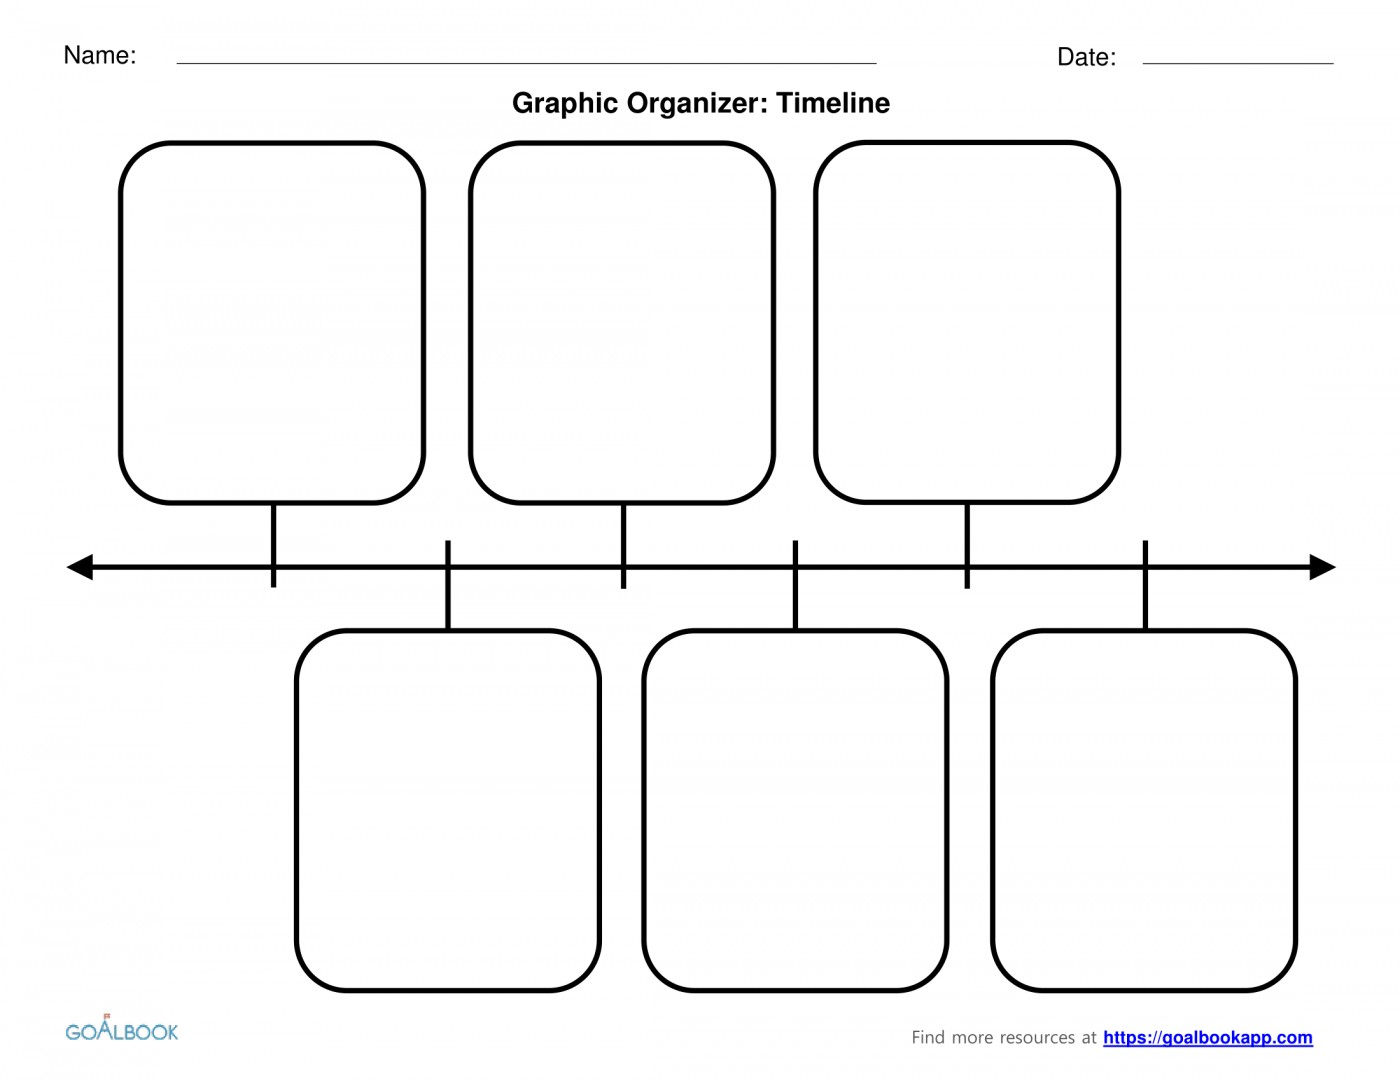 018 03 Timeline Blank Essay Example Five Paragraph Graphic